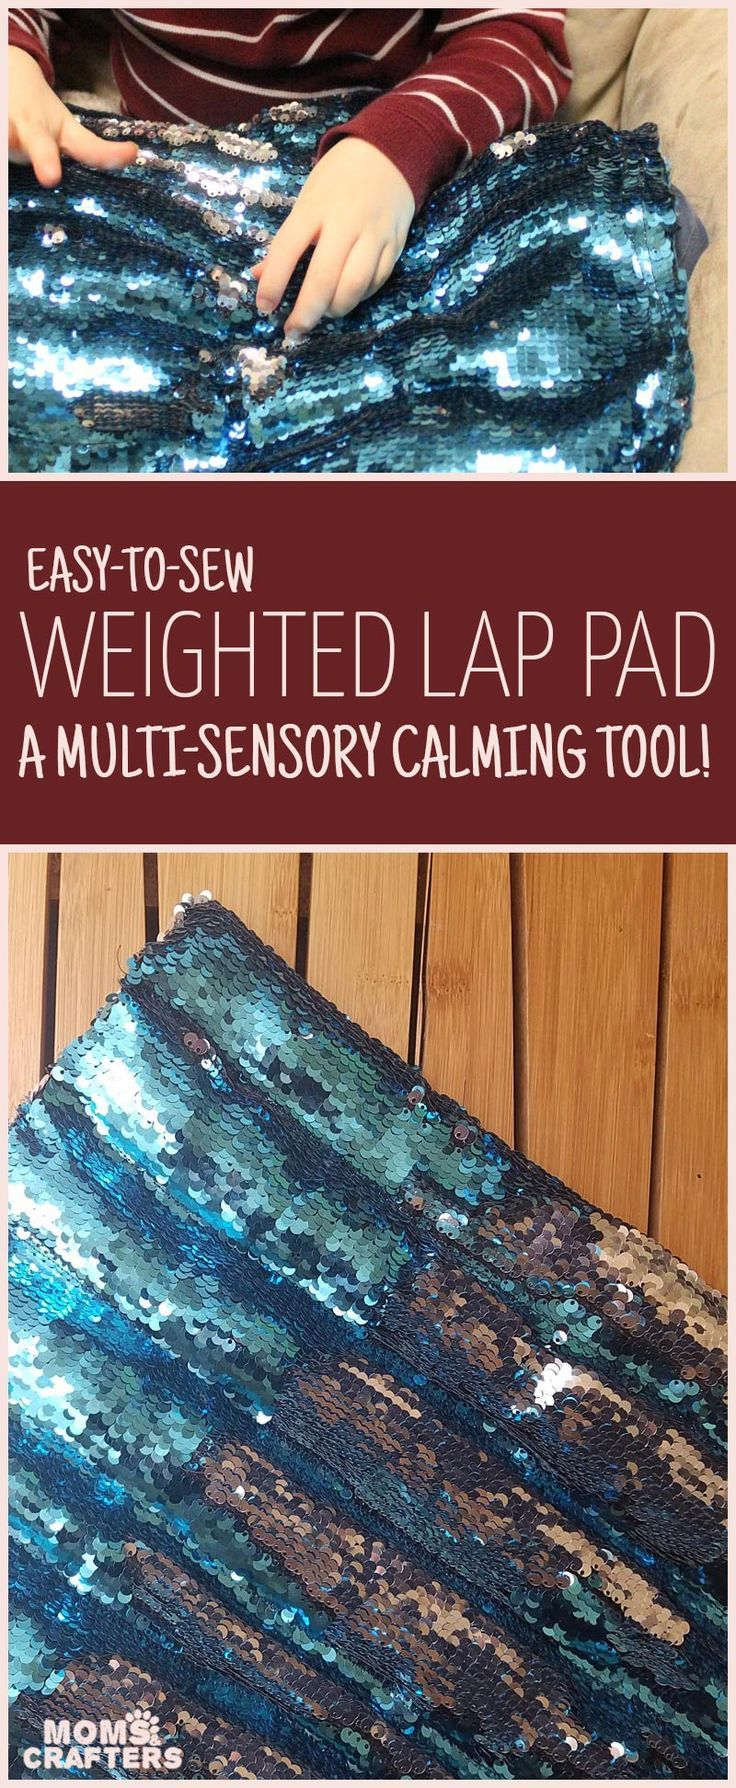 Make a DIY weighted lap pad - an easy beginner sewing project for moms! This calming sensory tool offers multi-sensory stimulation and is perfect for calming young children with anxiety. It's a DIY toy and a simple half-hour craft for moms all in one!